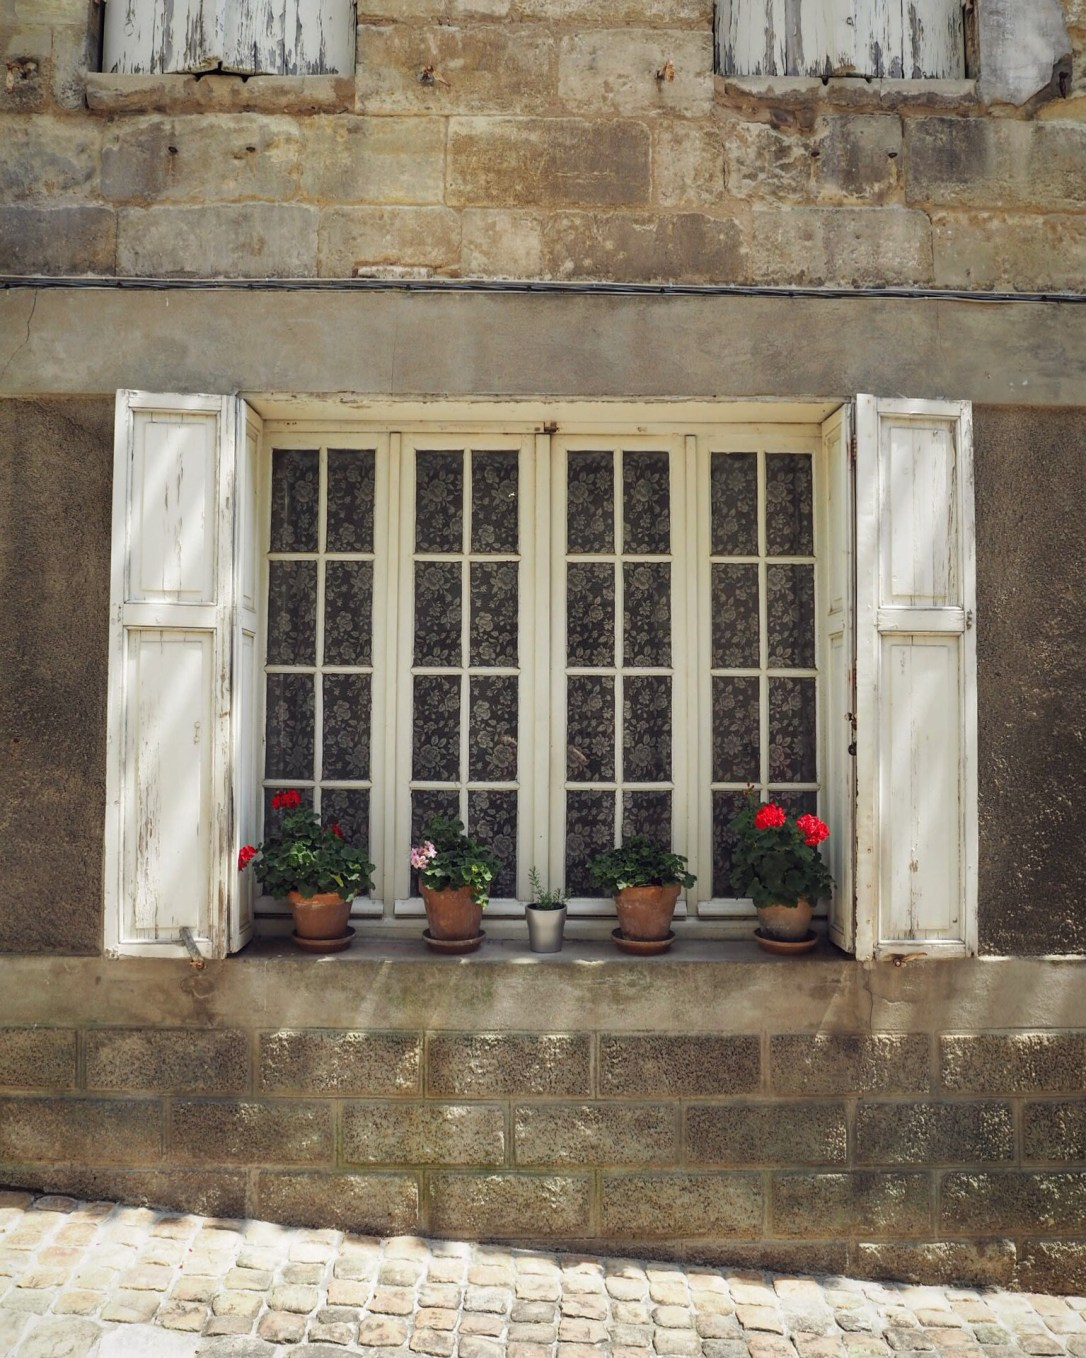 Pretty window and flowers in St-Emilion